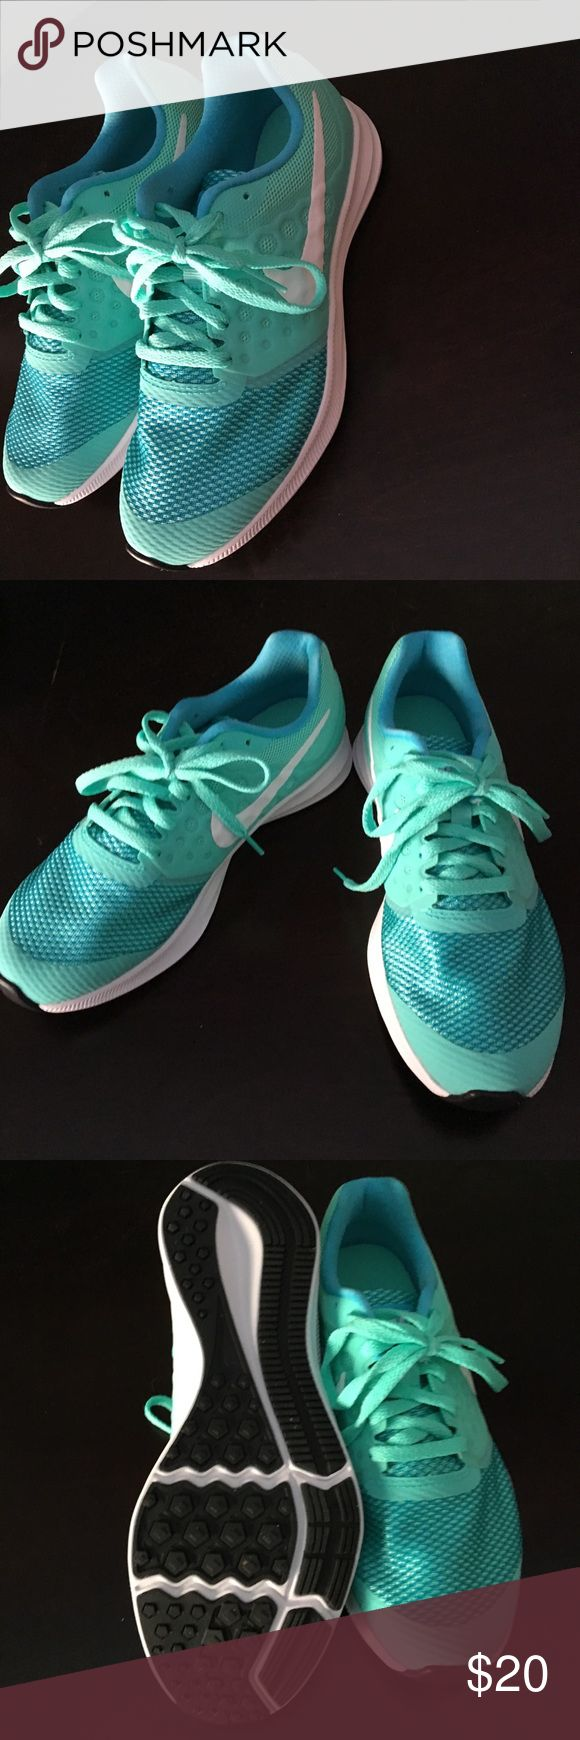 Girls Nike tennis shoes Girls Nike tennis shoes (size 3.5) Excellent condition/Never worn Color is a green aqua color Nike Shoes Sneakers